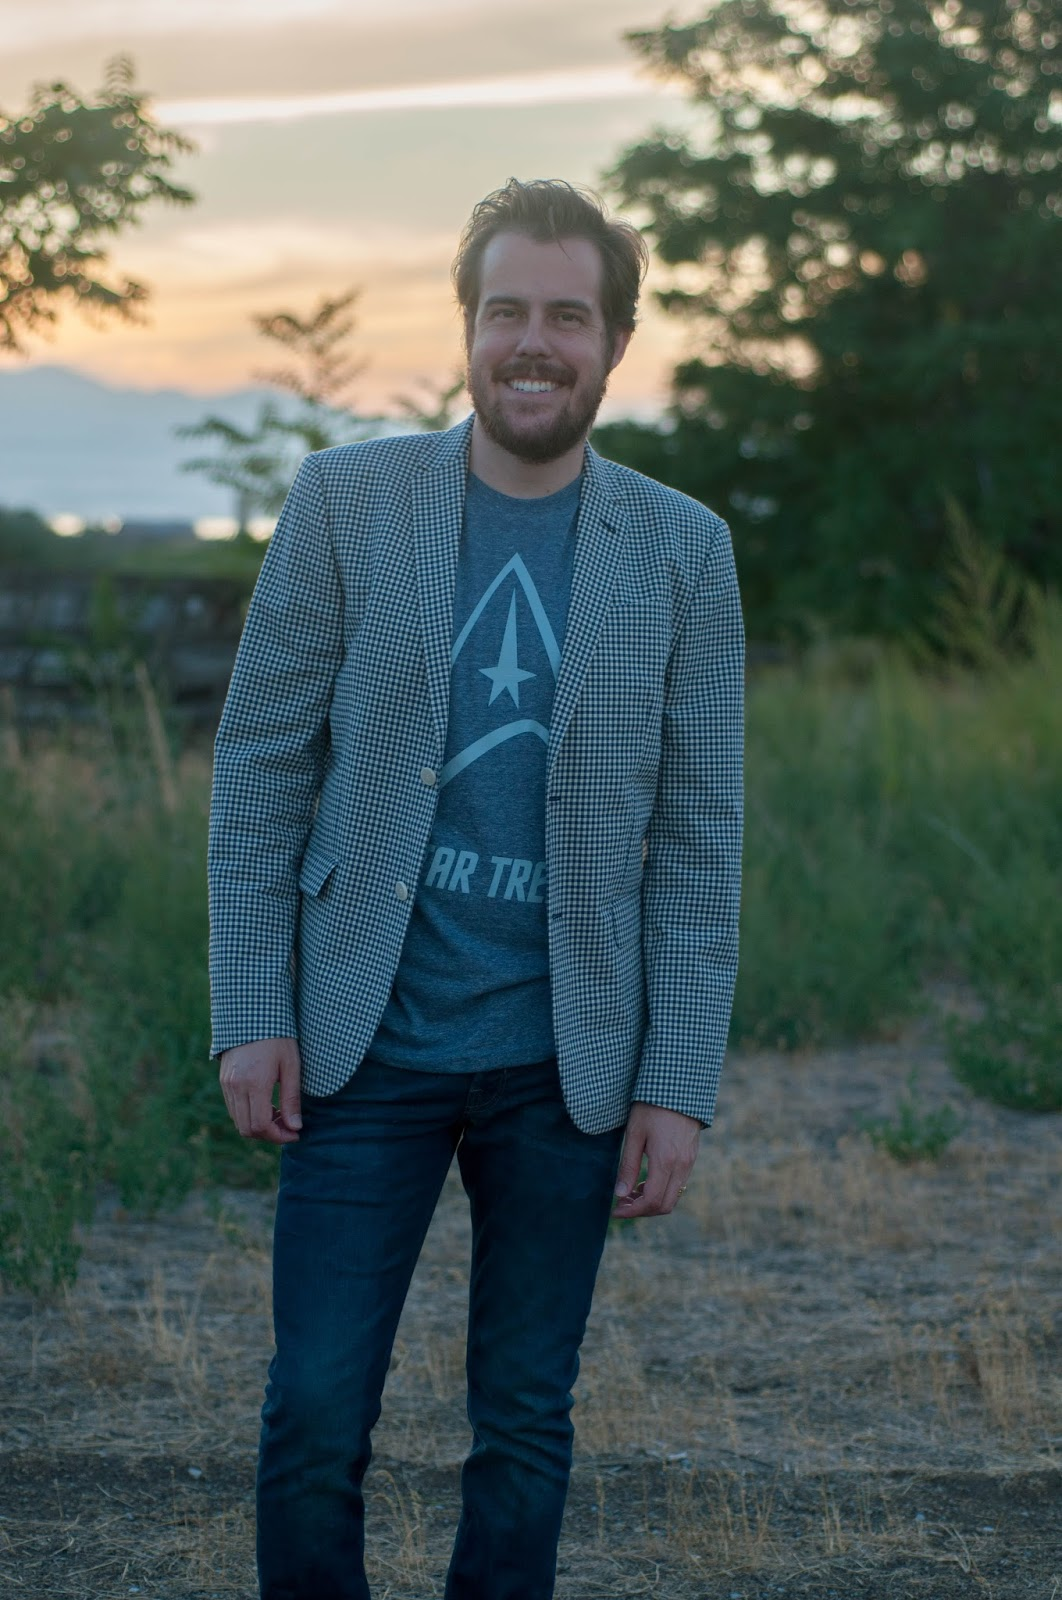 mens style, mens fashion, ootd, what i wore, fashion blogger, street style, target style